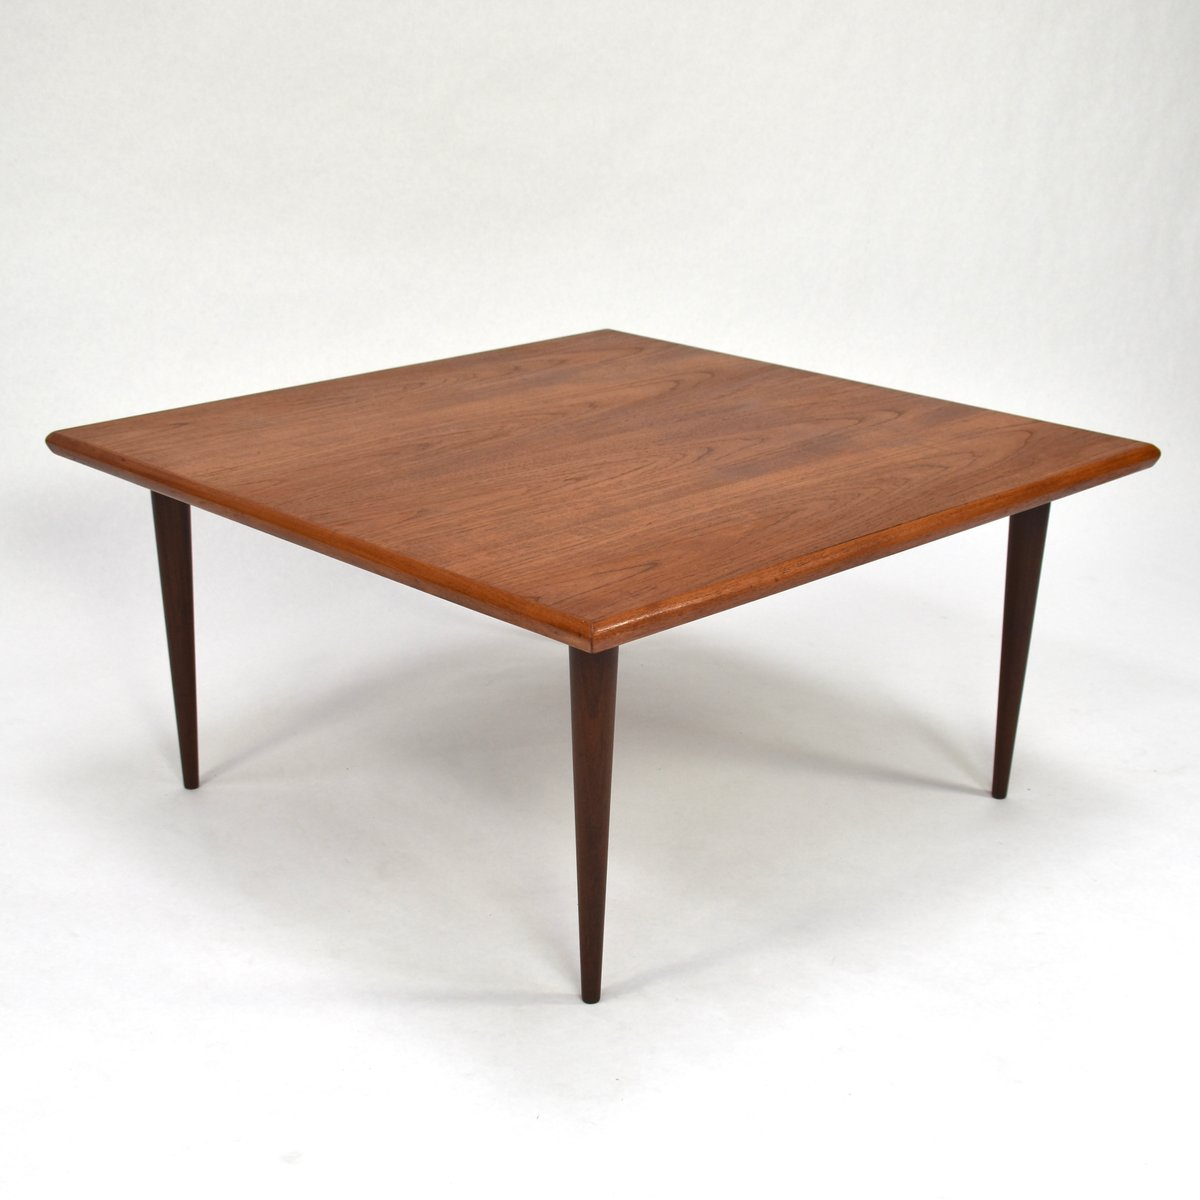 Teak Oil Coffee Table: Danish Teak Coffee Table, 1950s For Sale At Pamono